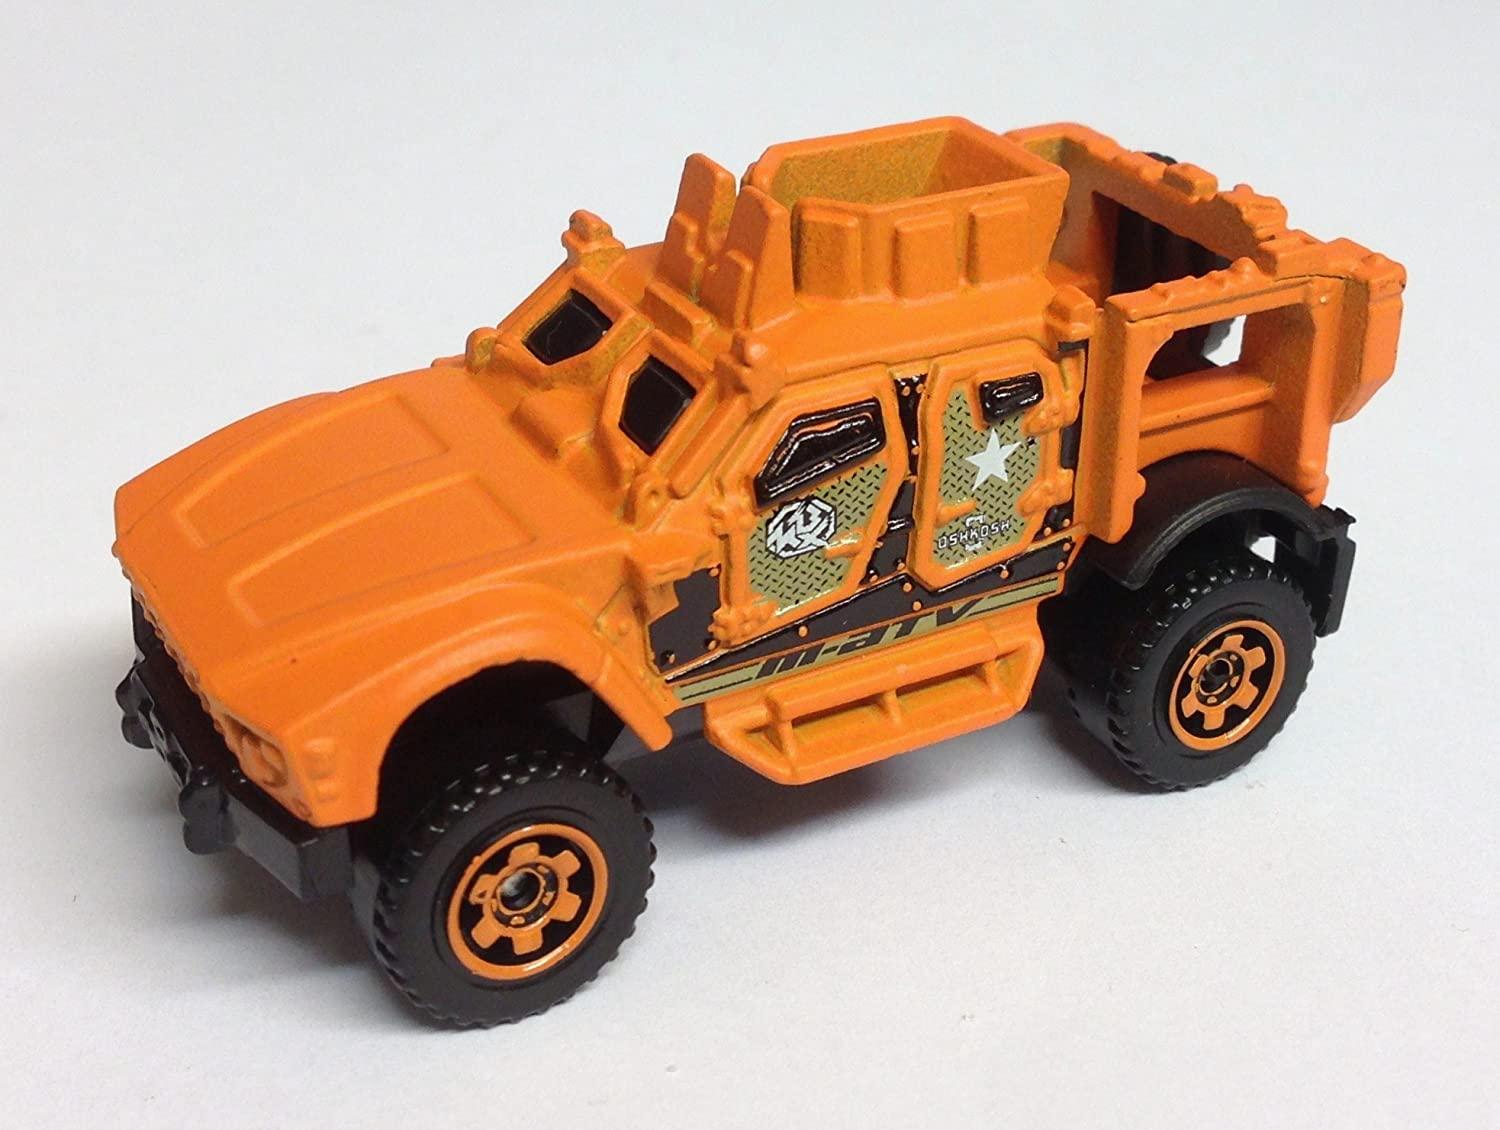 Matchbox-Autos MB855 – 1:98 th Skala OSHKOSH M-ATV-Geländewagen in orange günstig kaufen